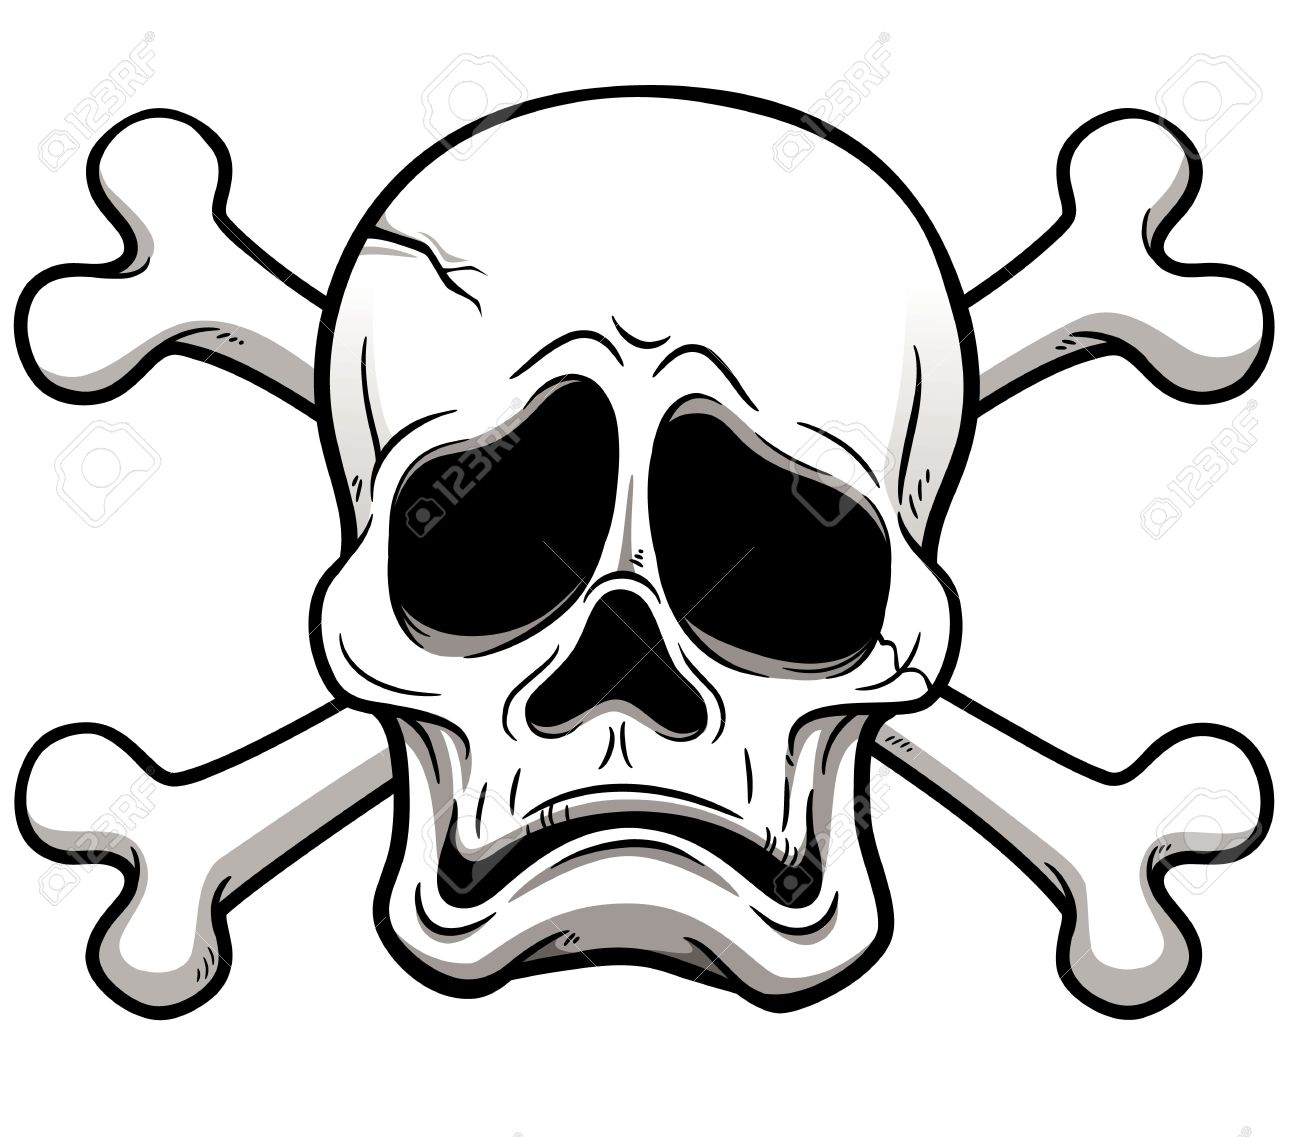 illustration of Skull and Crossbones Stock Vector - 19552790